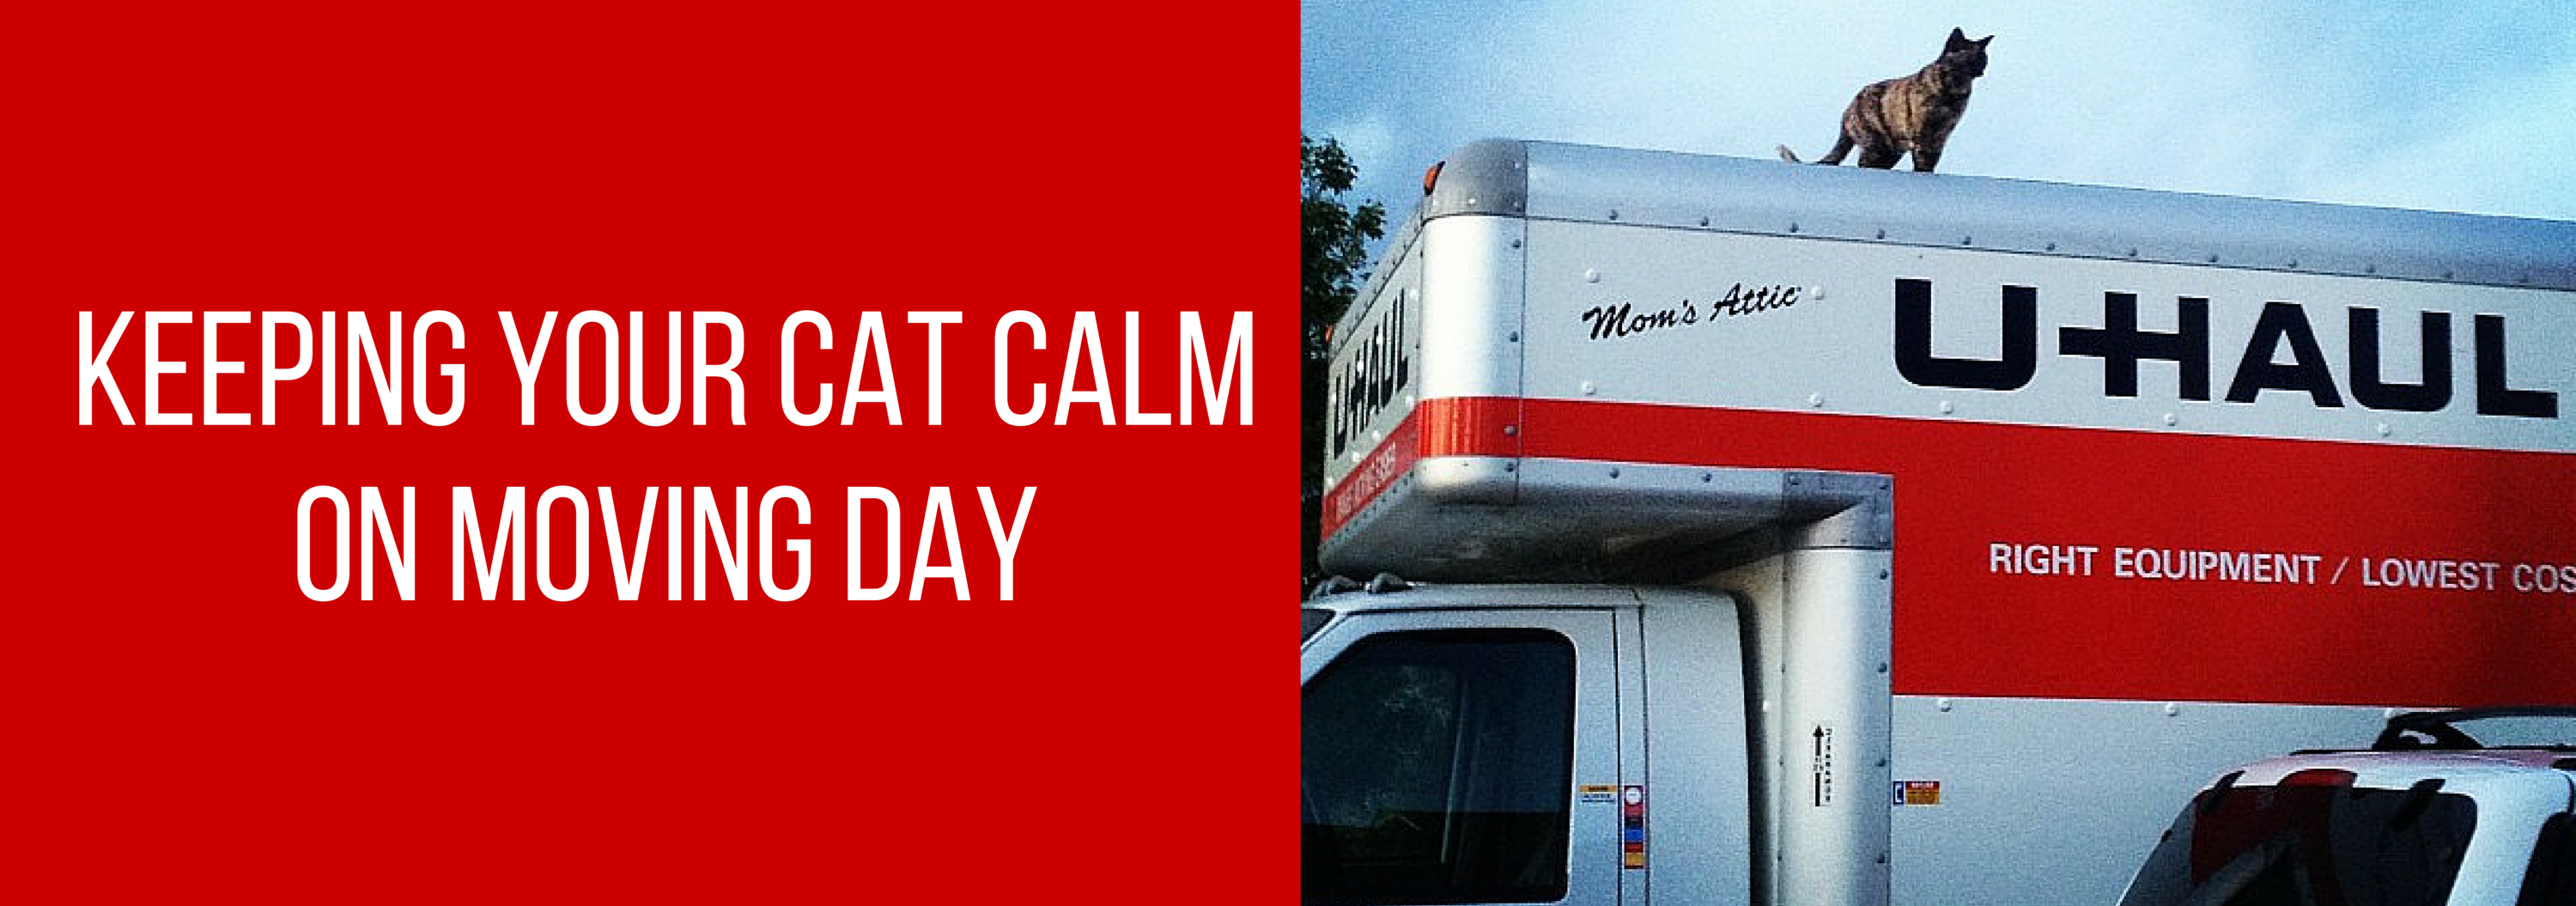 Keeping Your Cat Calm on Moving Day (2)